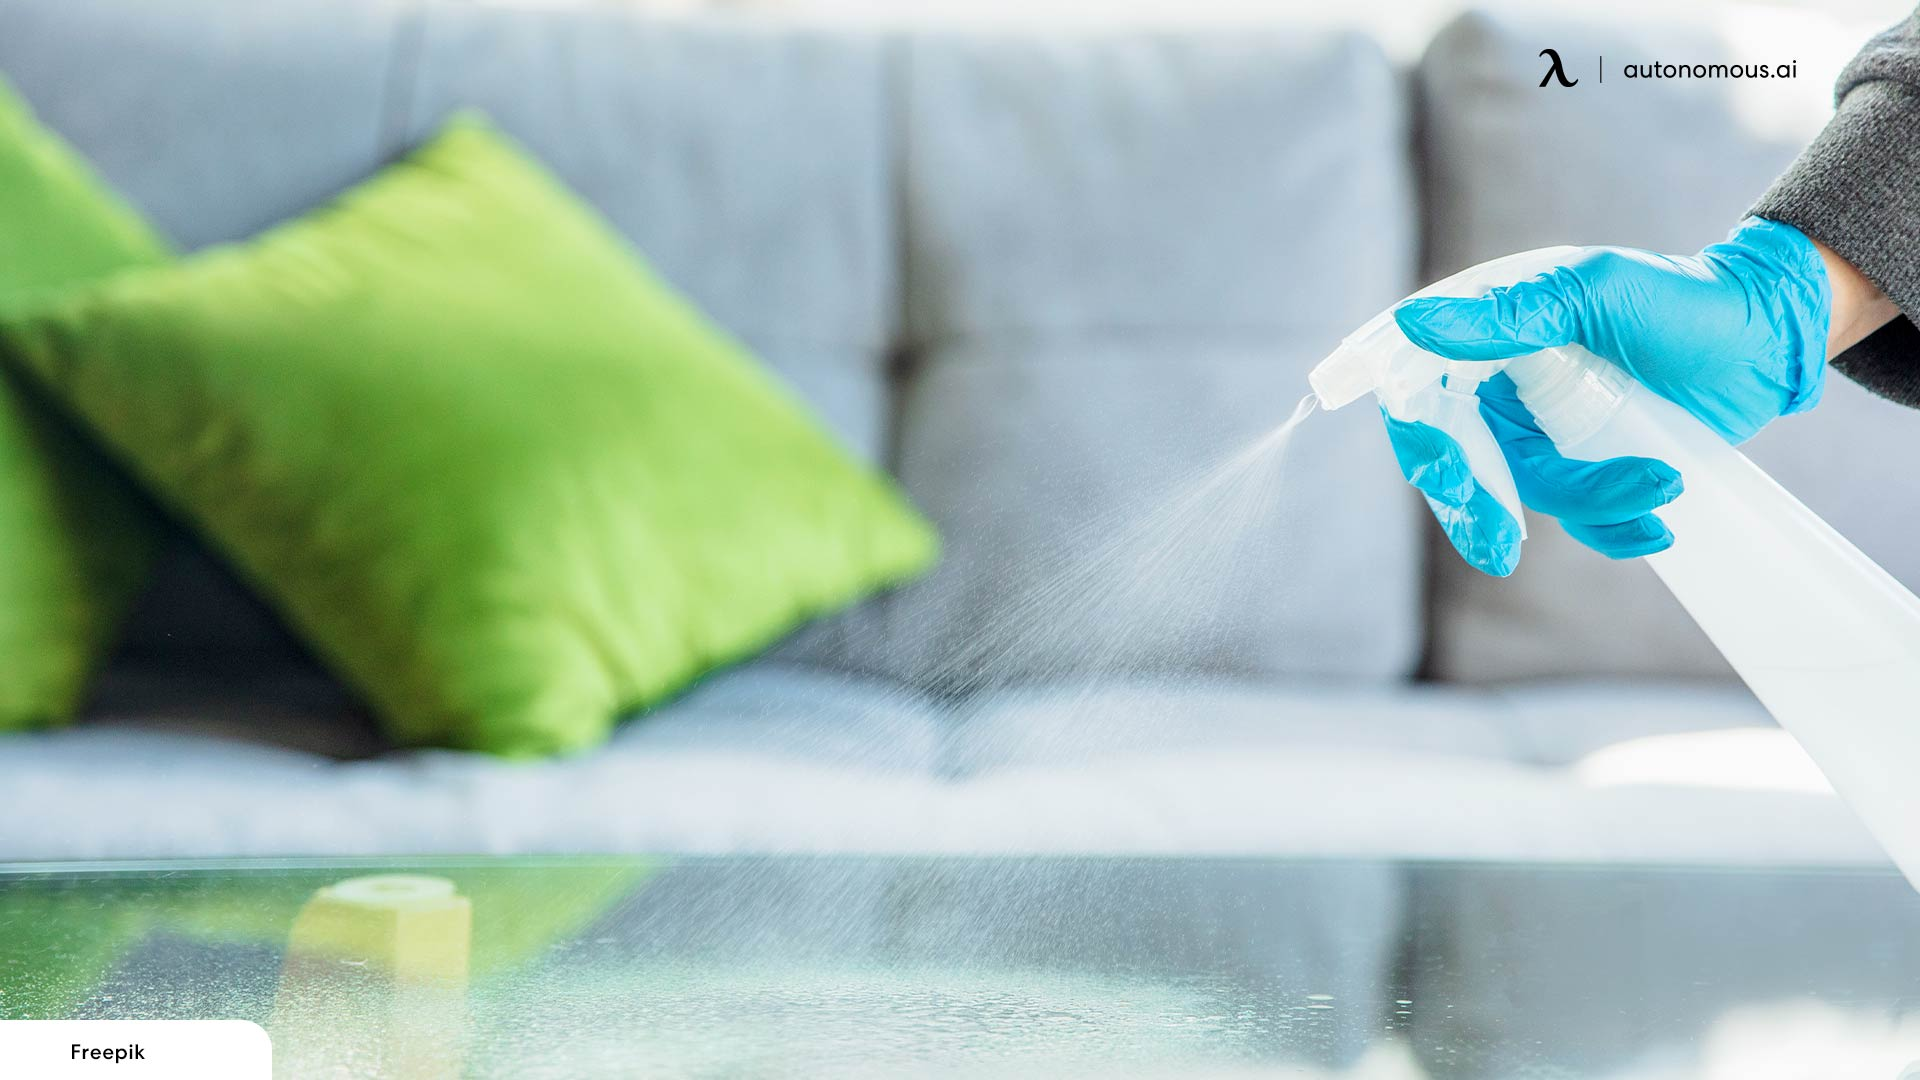 Disinfectants: Soap or Wipe